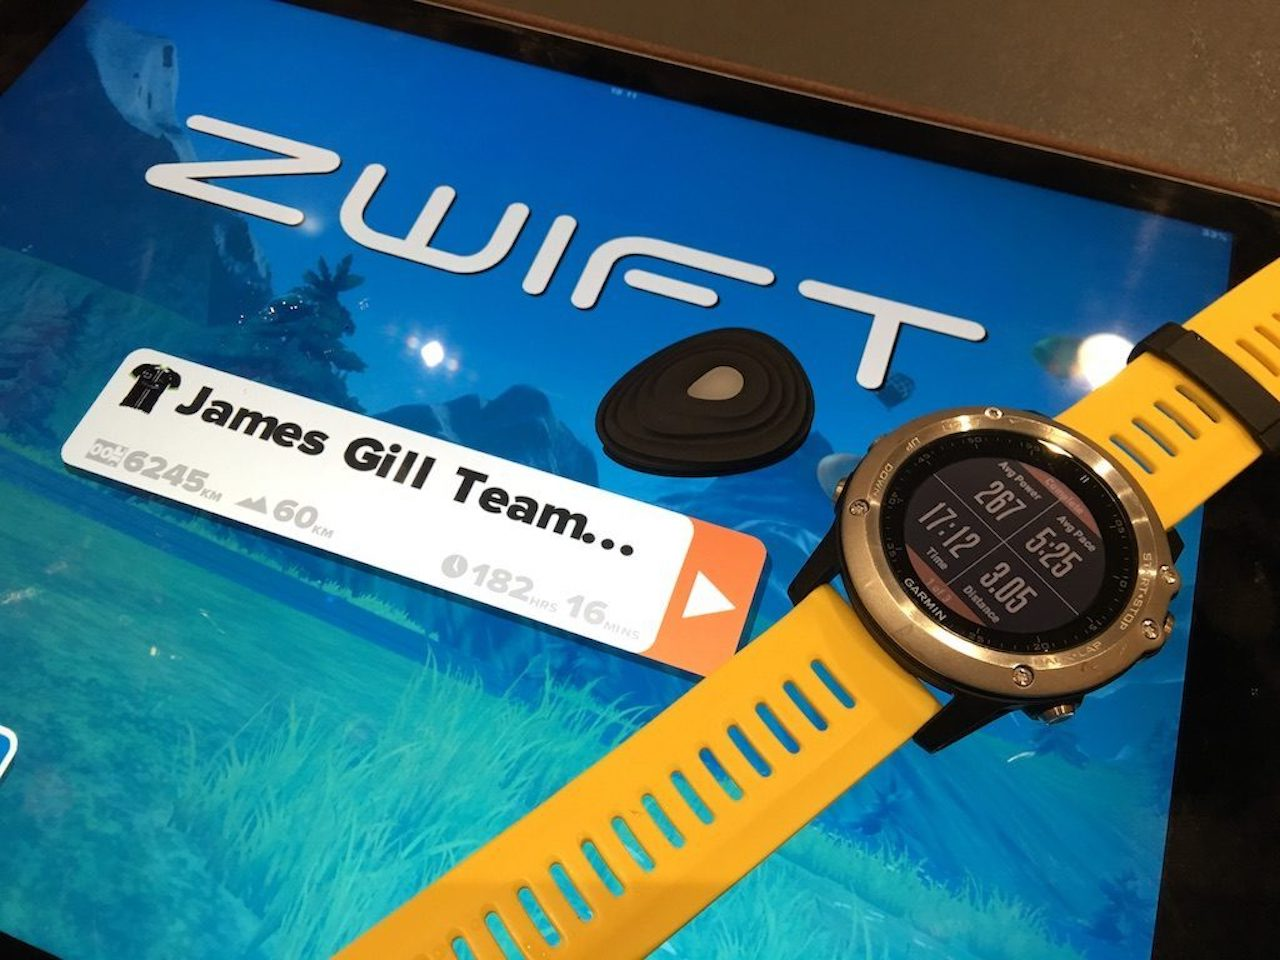 TitaniumGeek IMG 1162 1024x768 Zwift RunPod   Your Treadmill Just Got Upgraded! Gear Reviews Running Zwift  Zwift running cadence   Image of IMG 1162 1024x768